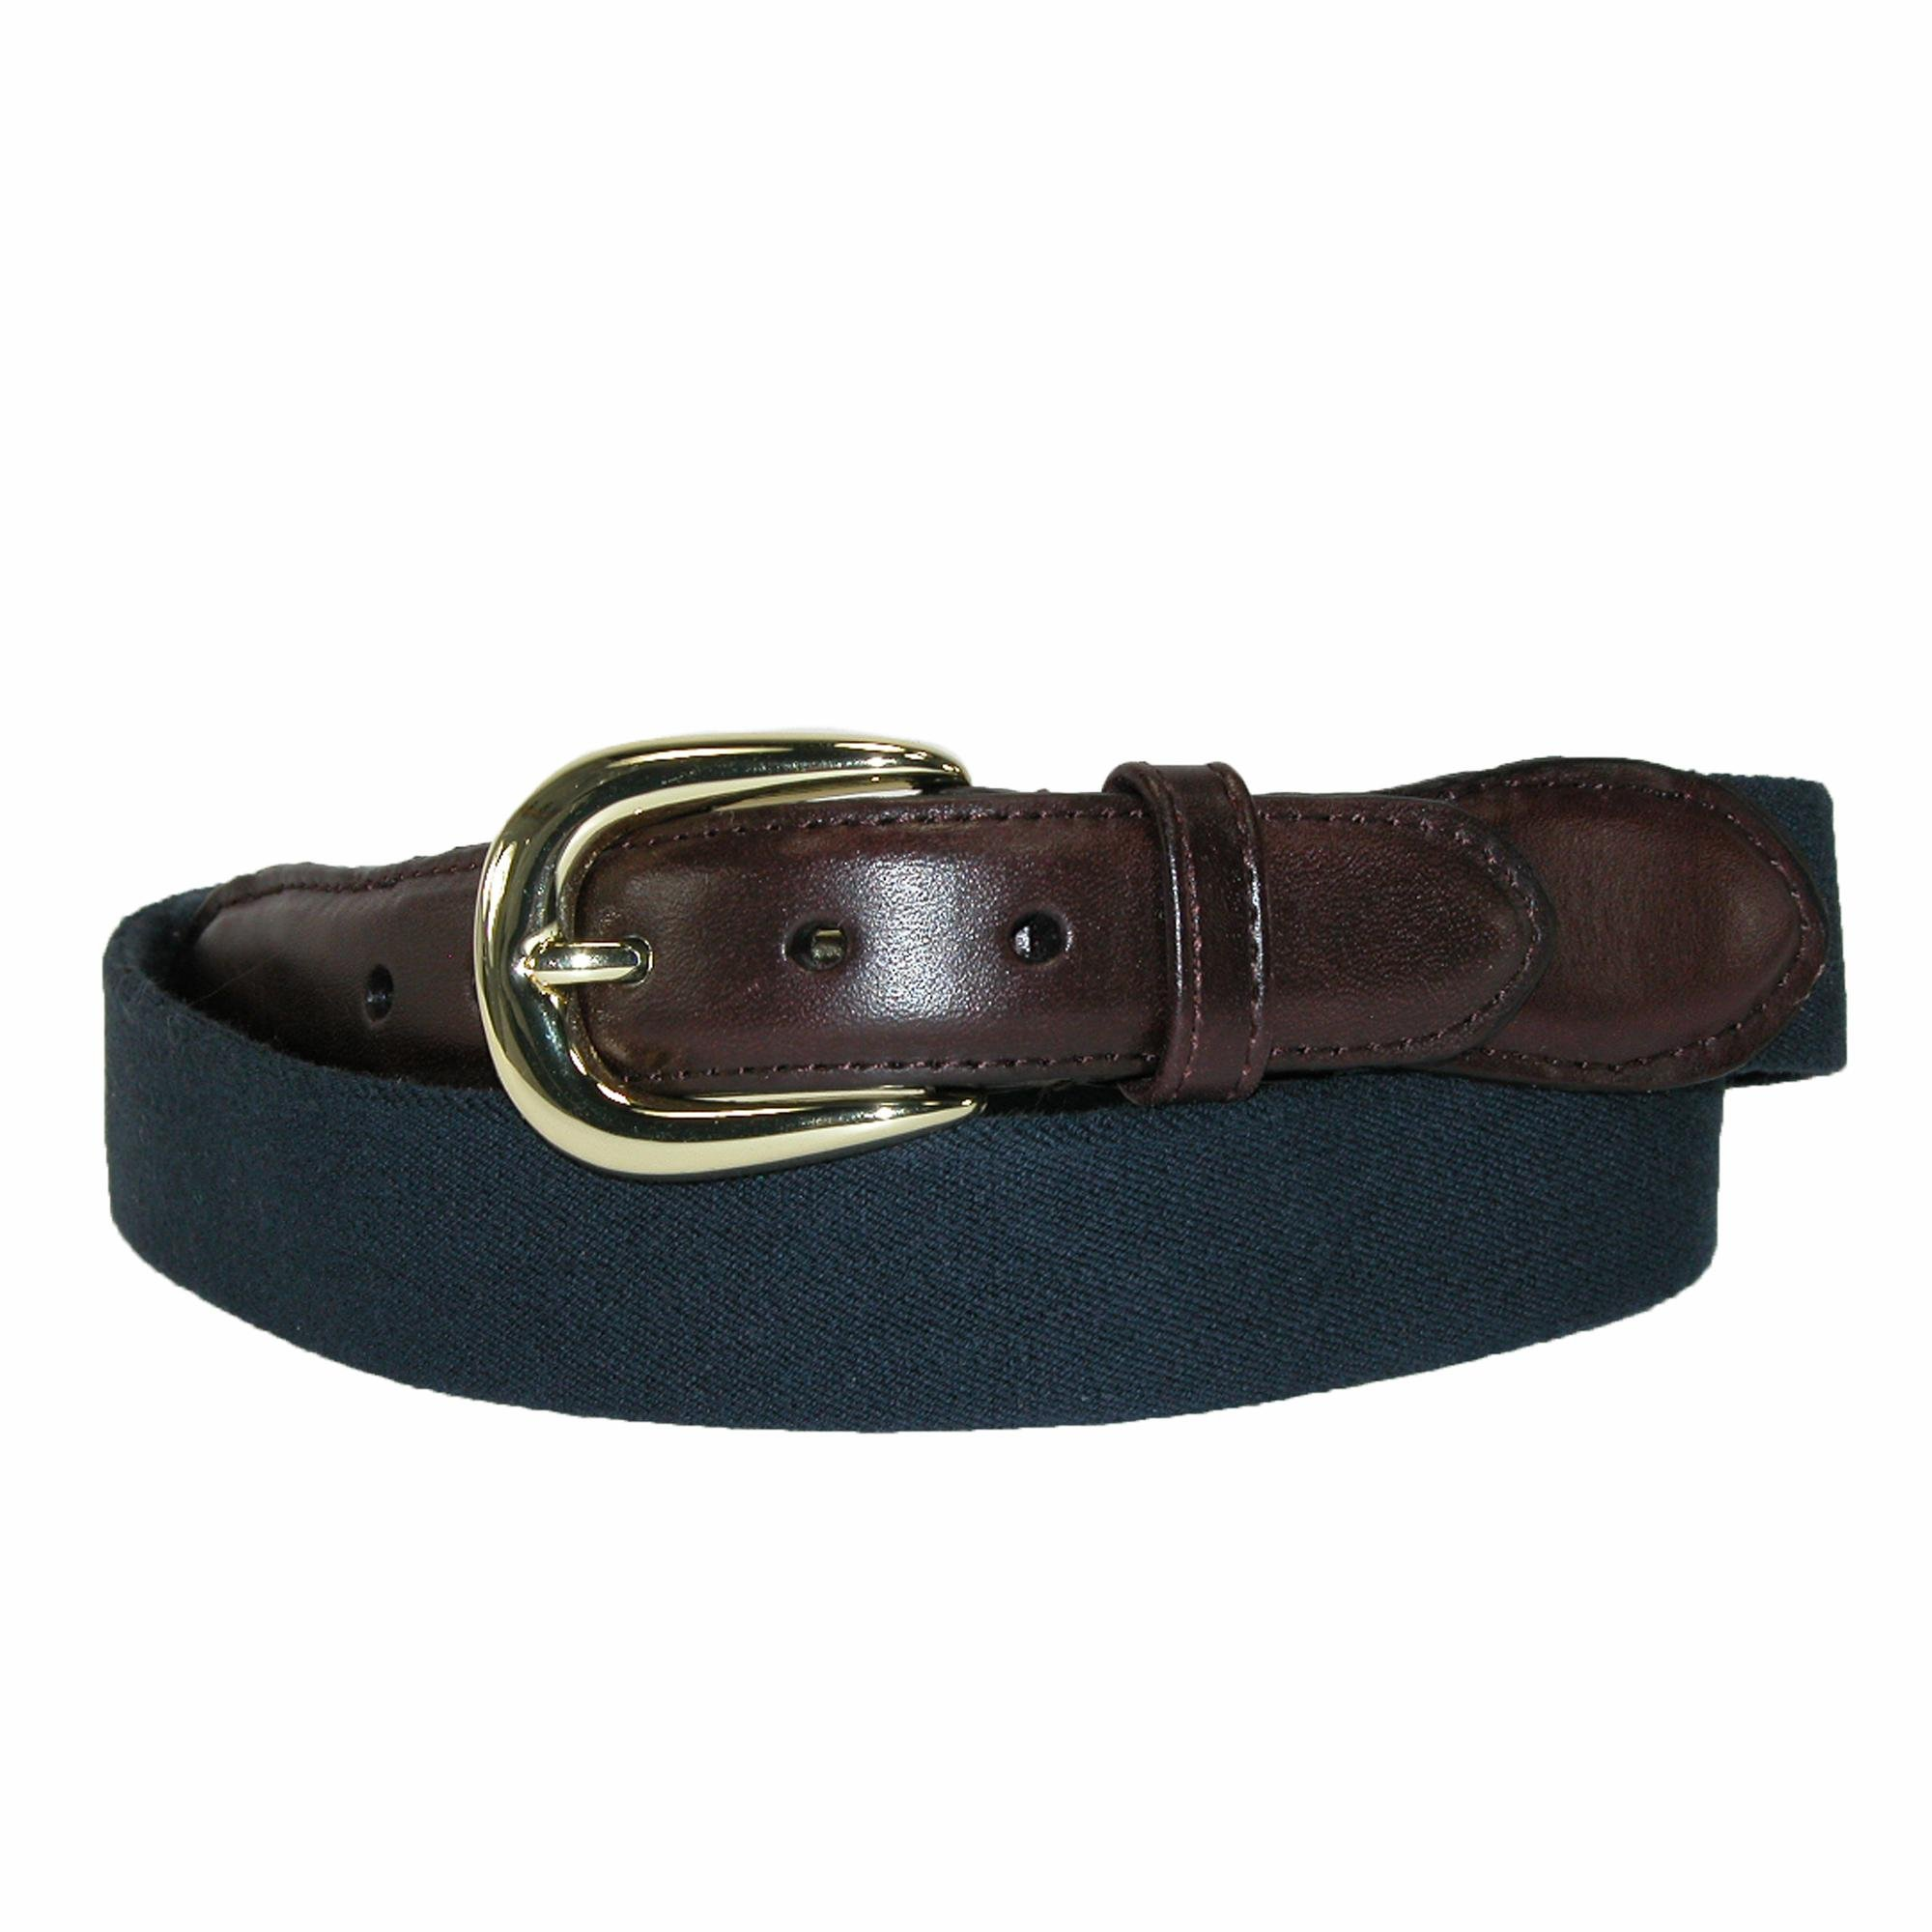 Rogers-Whitley Men's Cotton Elastic Stretch Belt, 32, Navy